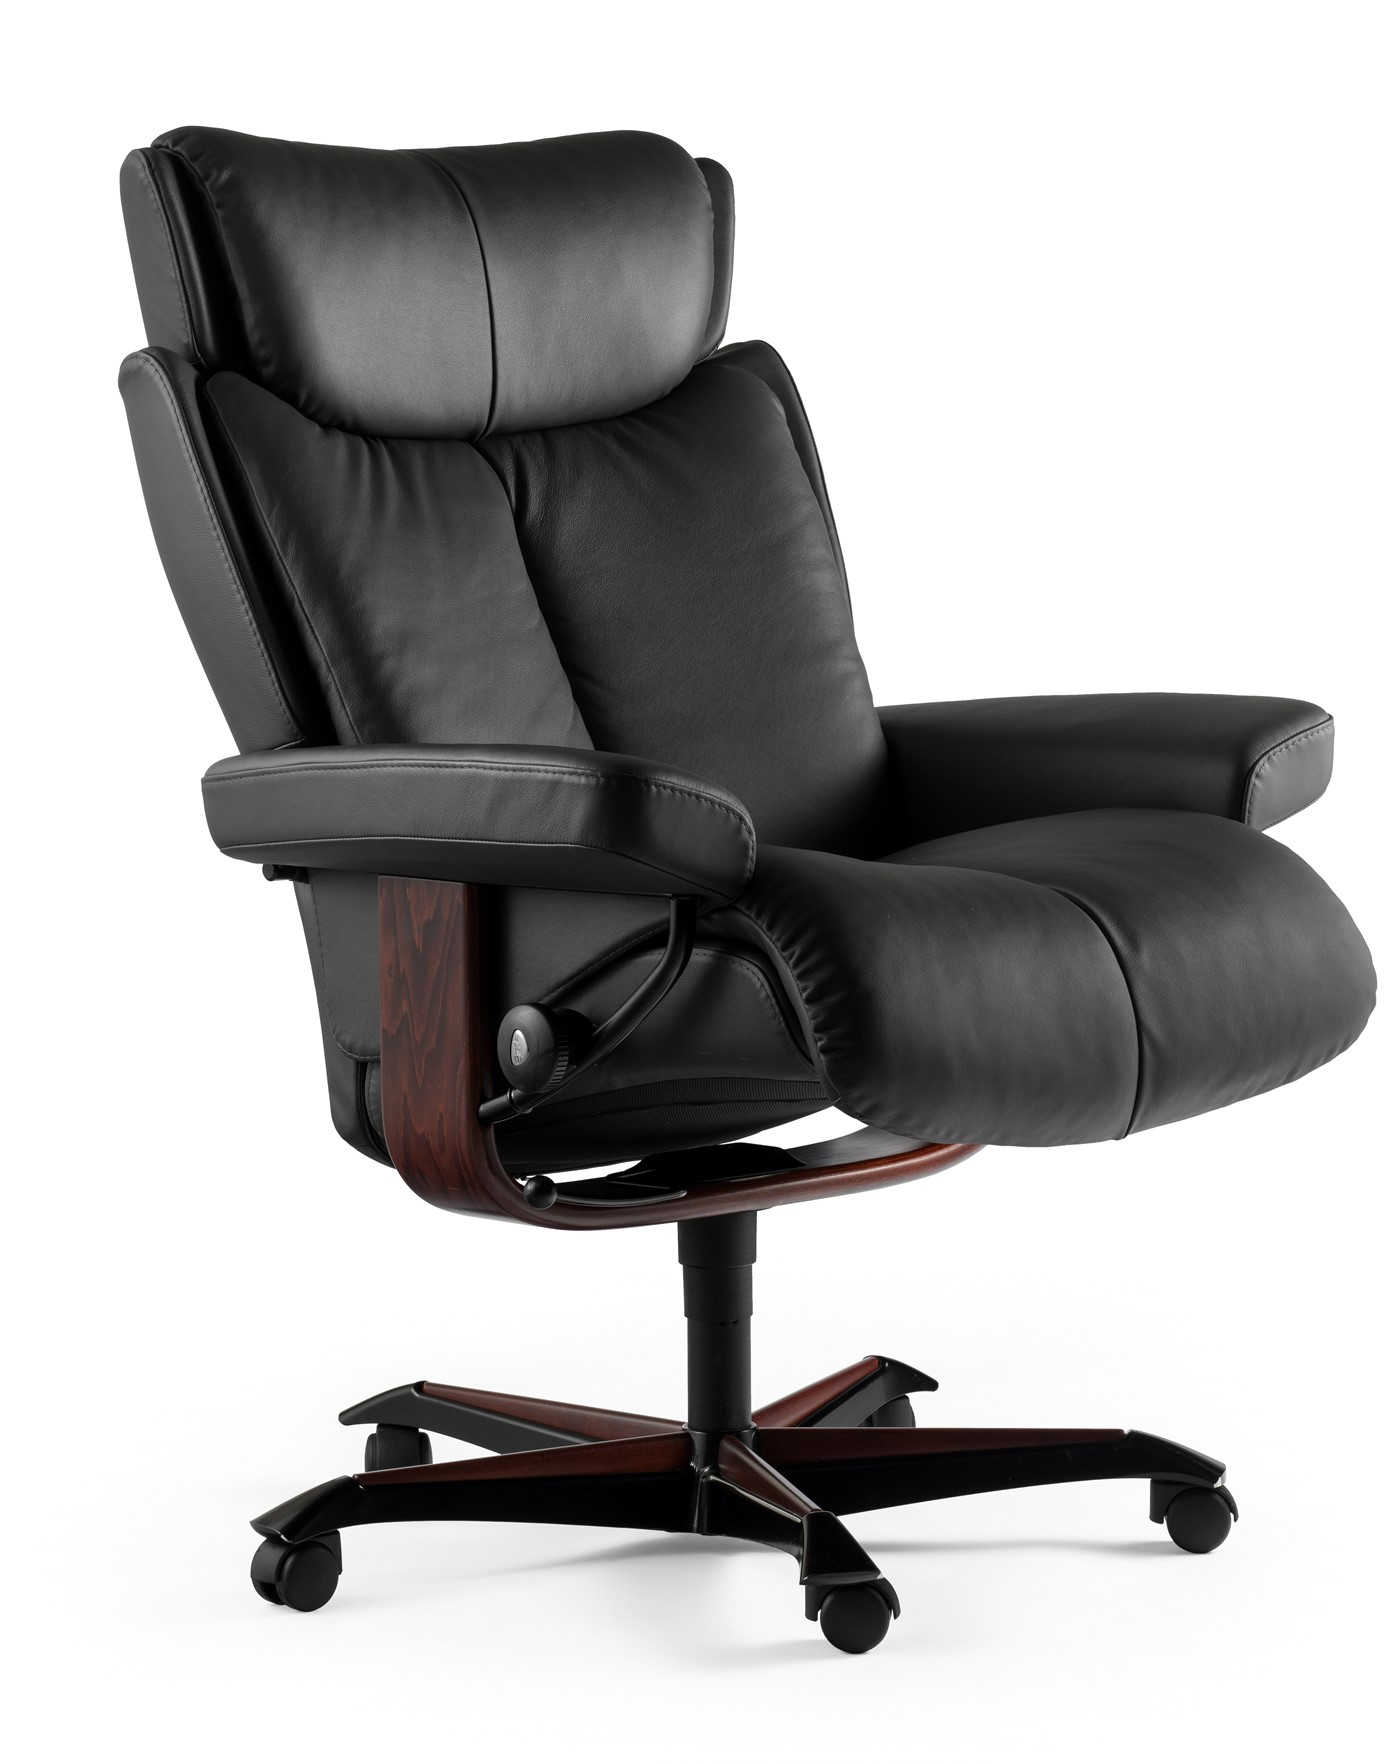 Tax Time Savings With The World 39 S Most Comfortable Office Chairs Easyli